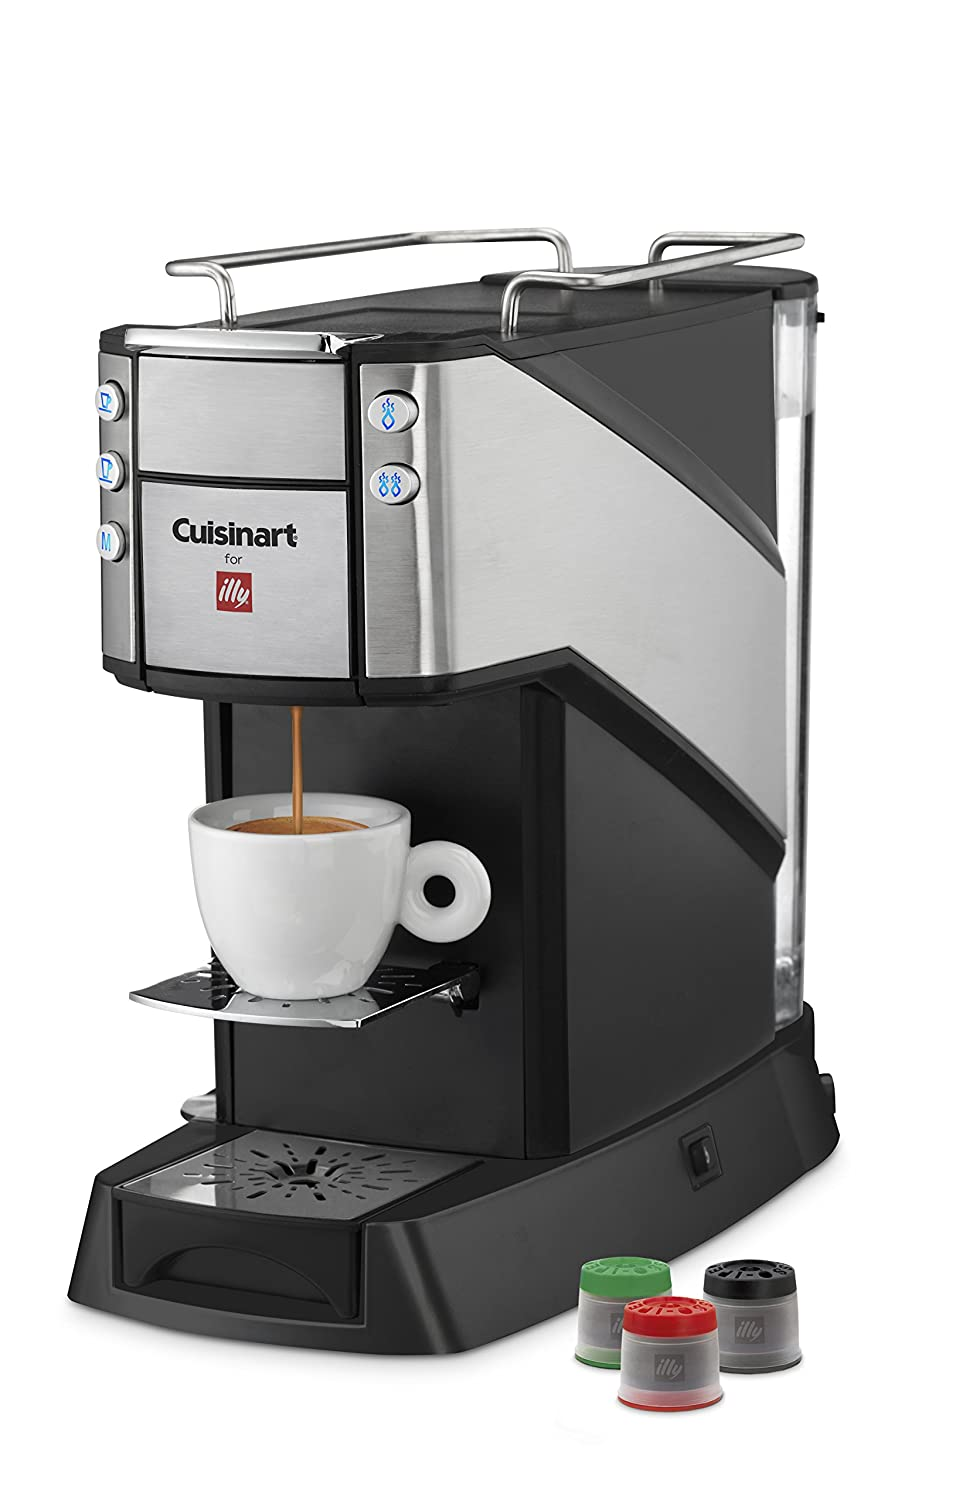 machine a cafe illy prix illy menu machine caf capsules flexy machine a cafe illy occasion. Black Bedroom Furniture Sets. Home Design Ideas